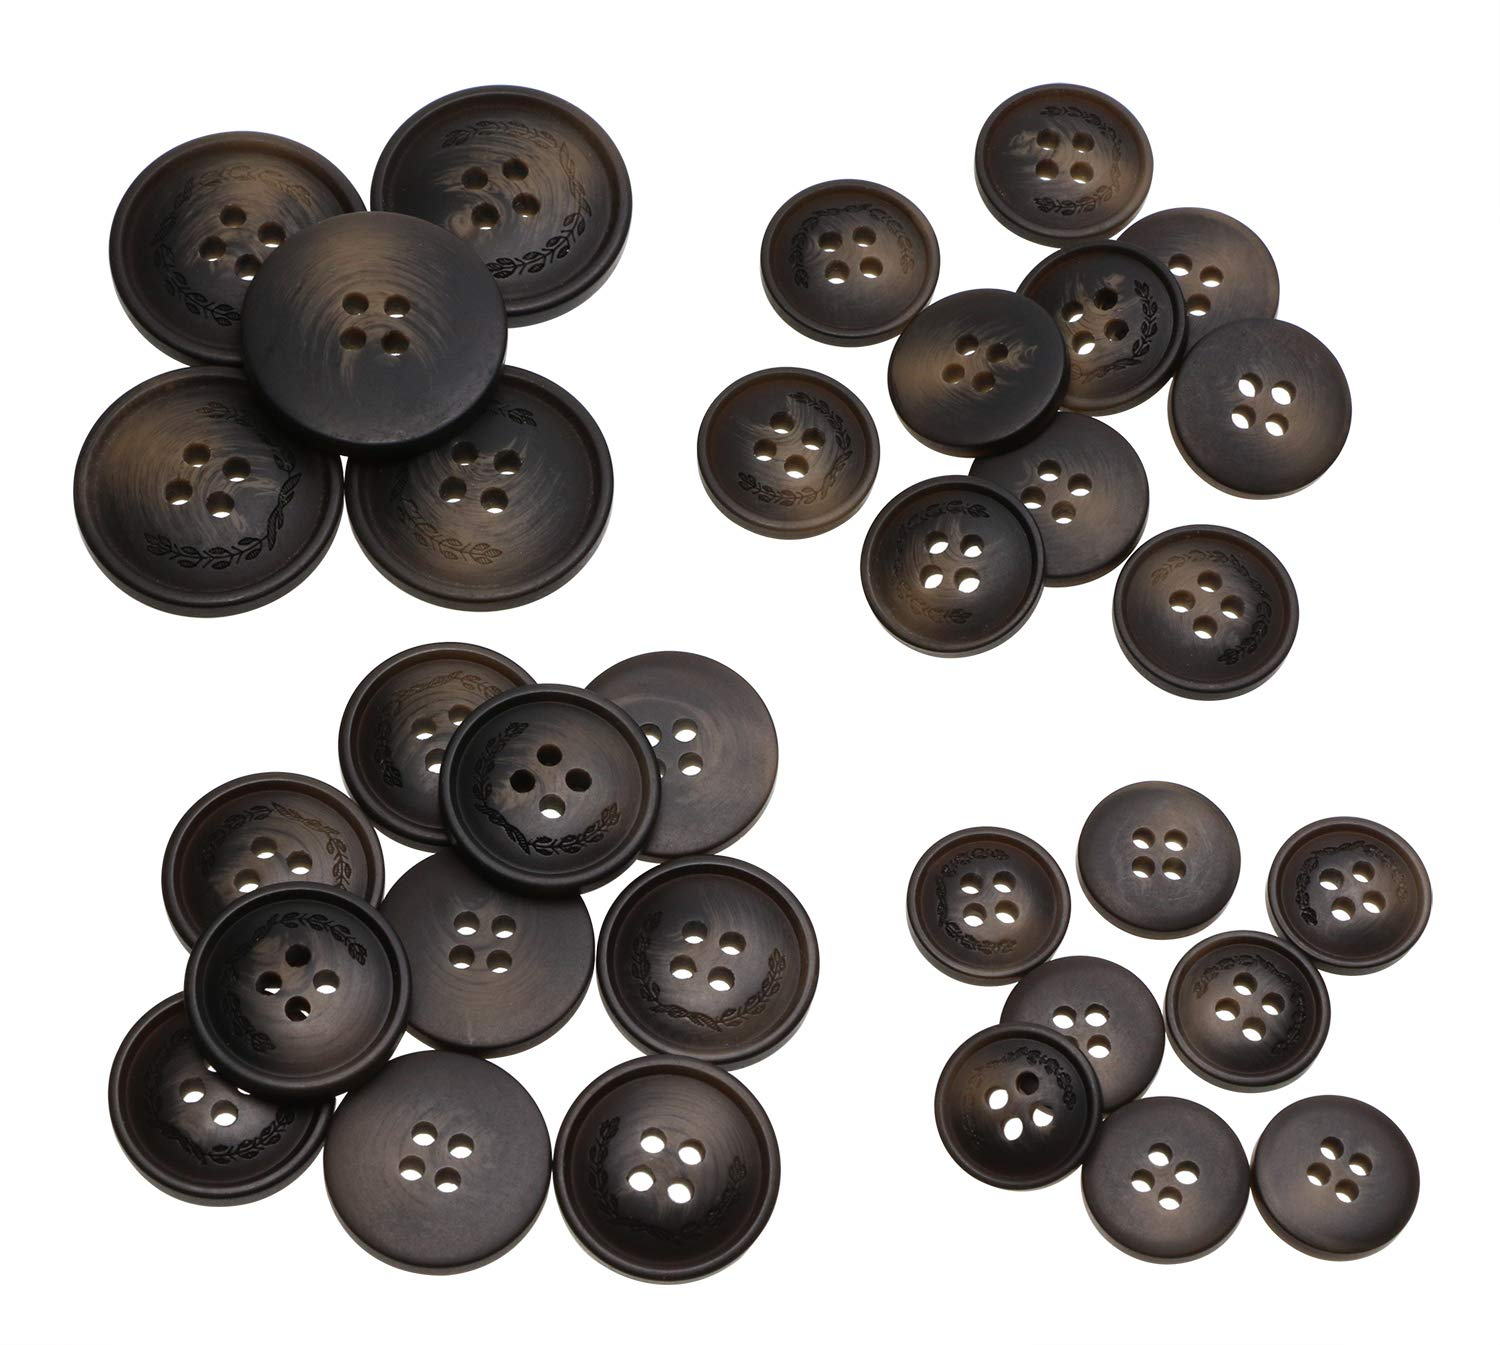 PENTA ANGEL 120Pcs Assorted Size Black Resin Round Buttons Set 4 Holes Flatback Snaps for Sewing Scrapbooking and Craft Ornament A-120PCS